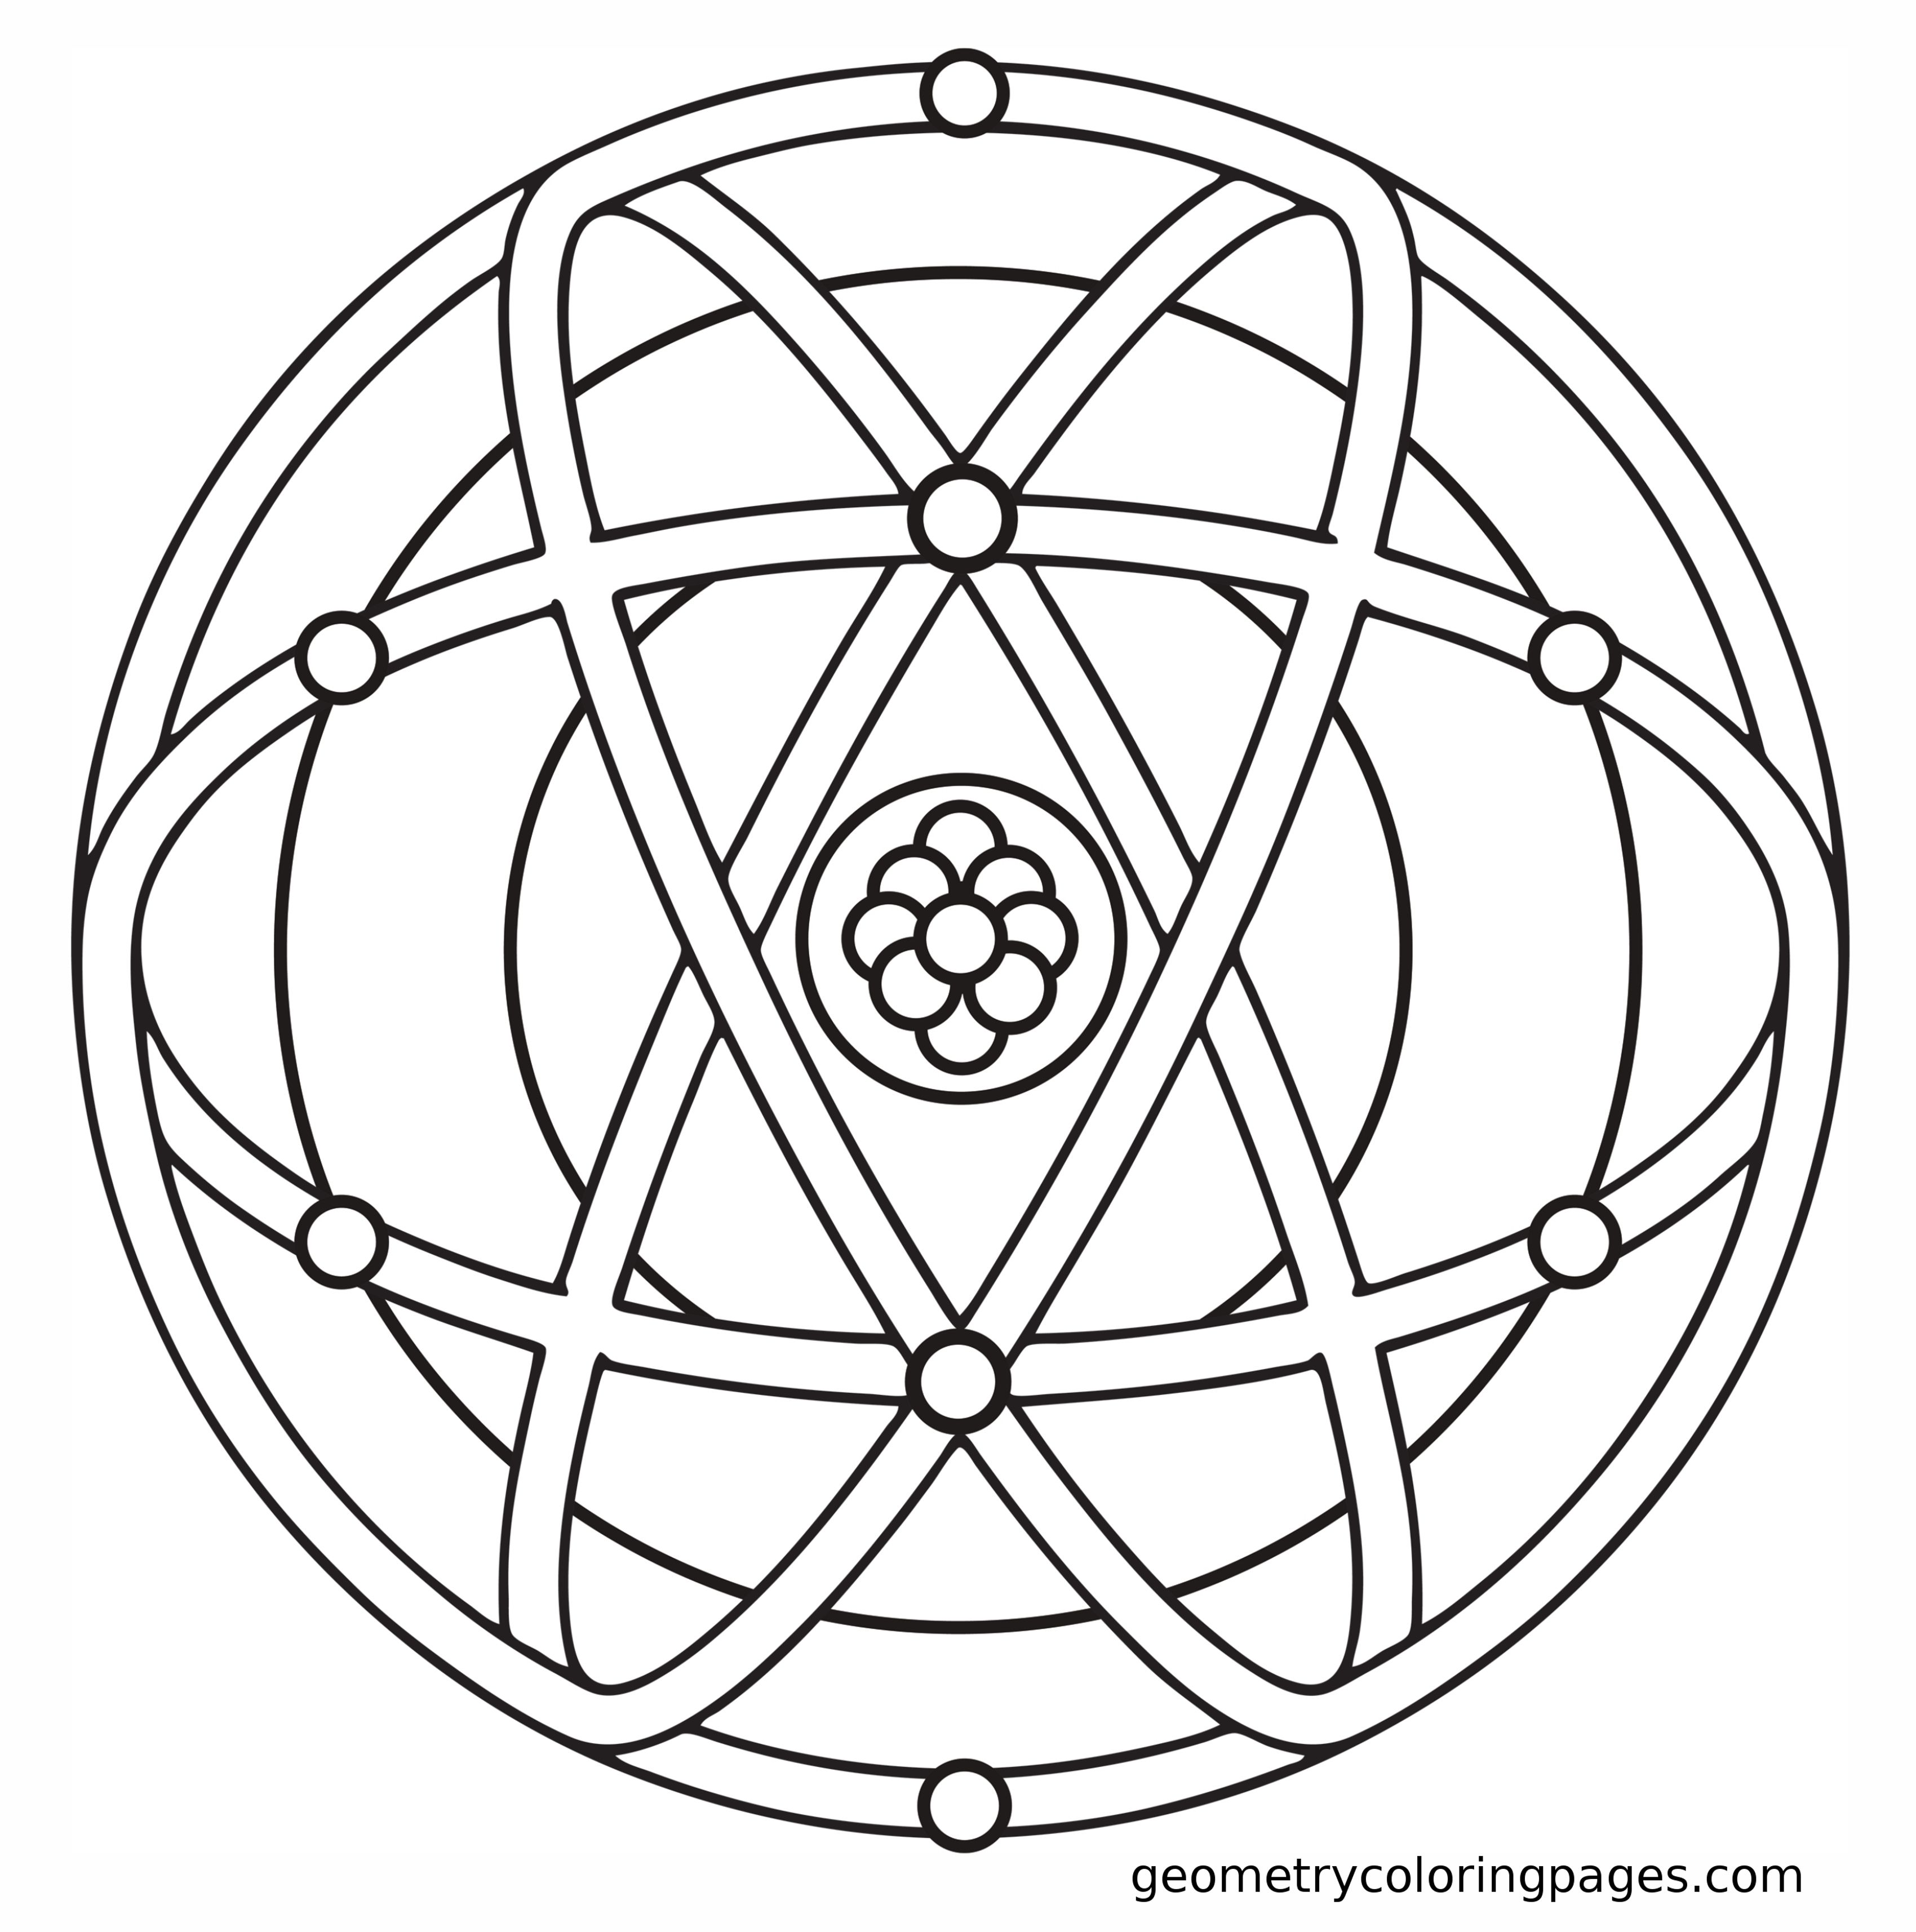 Mandala Coloring Page, Genesa Crystal from geometrycoloringpages.com ...